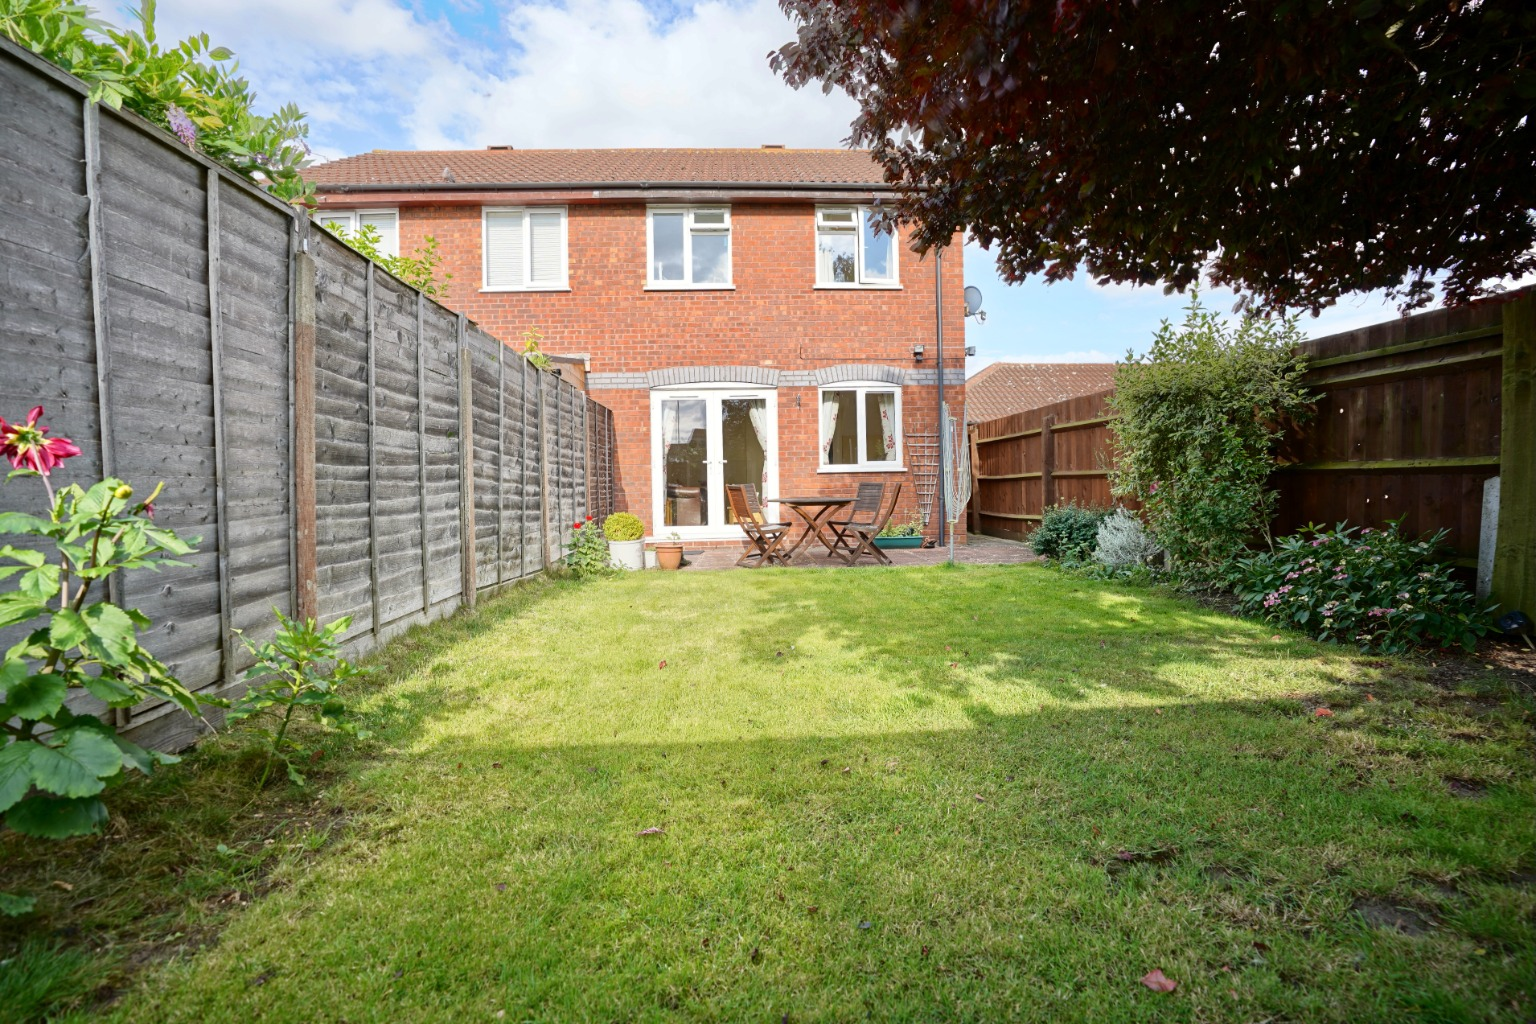 3 bed semi-detached house for sale in Carisbrooke Way, St. Neots  - Property Image 12